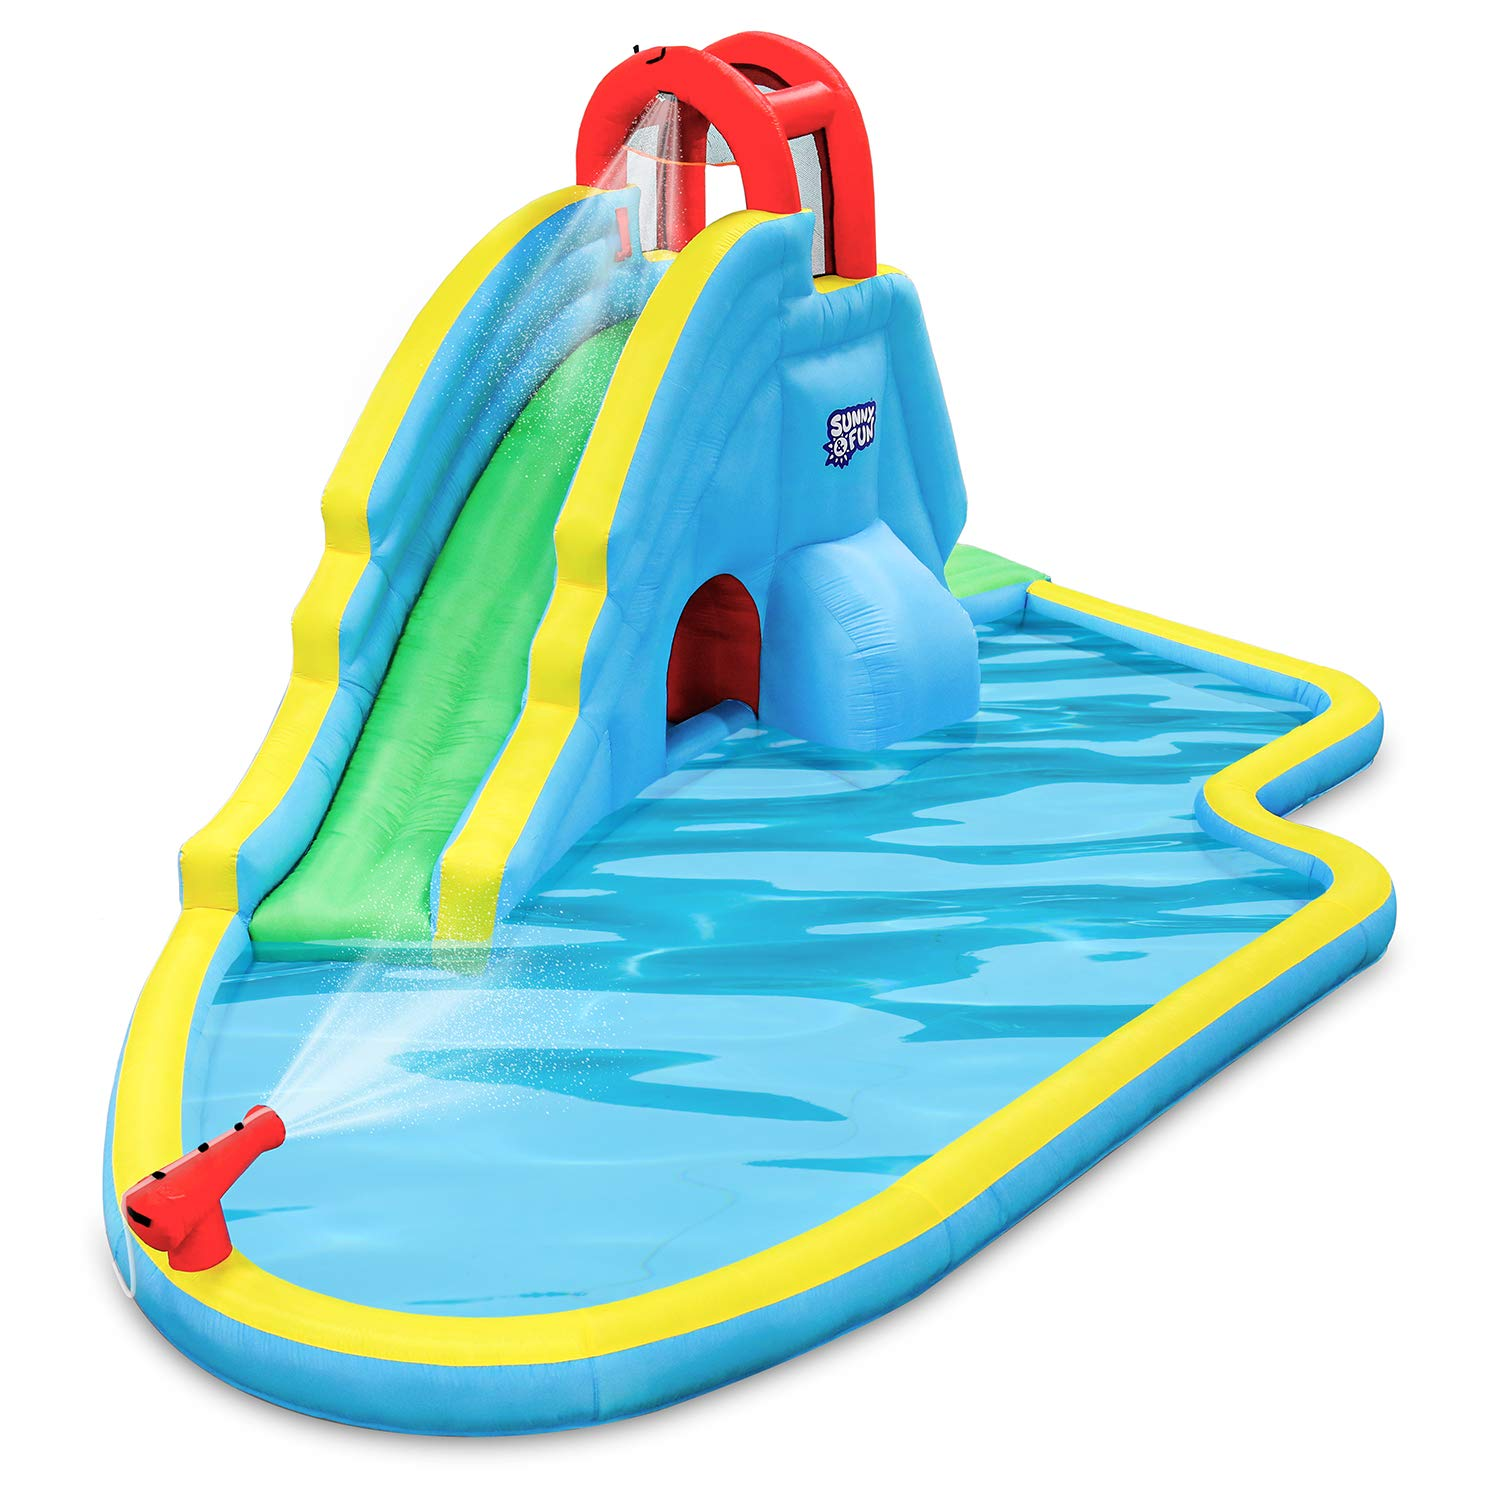 Deluxe Inflatable Water Slide Park - Heavy-Duty Nylon for Outdoor Fun - Climbing Wall, Slide, & Splash Pool - Easy to Set Up & Inflate with Included Air Pump & Carrying Case by Sunny & Fun